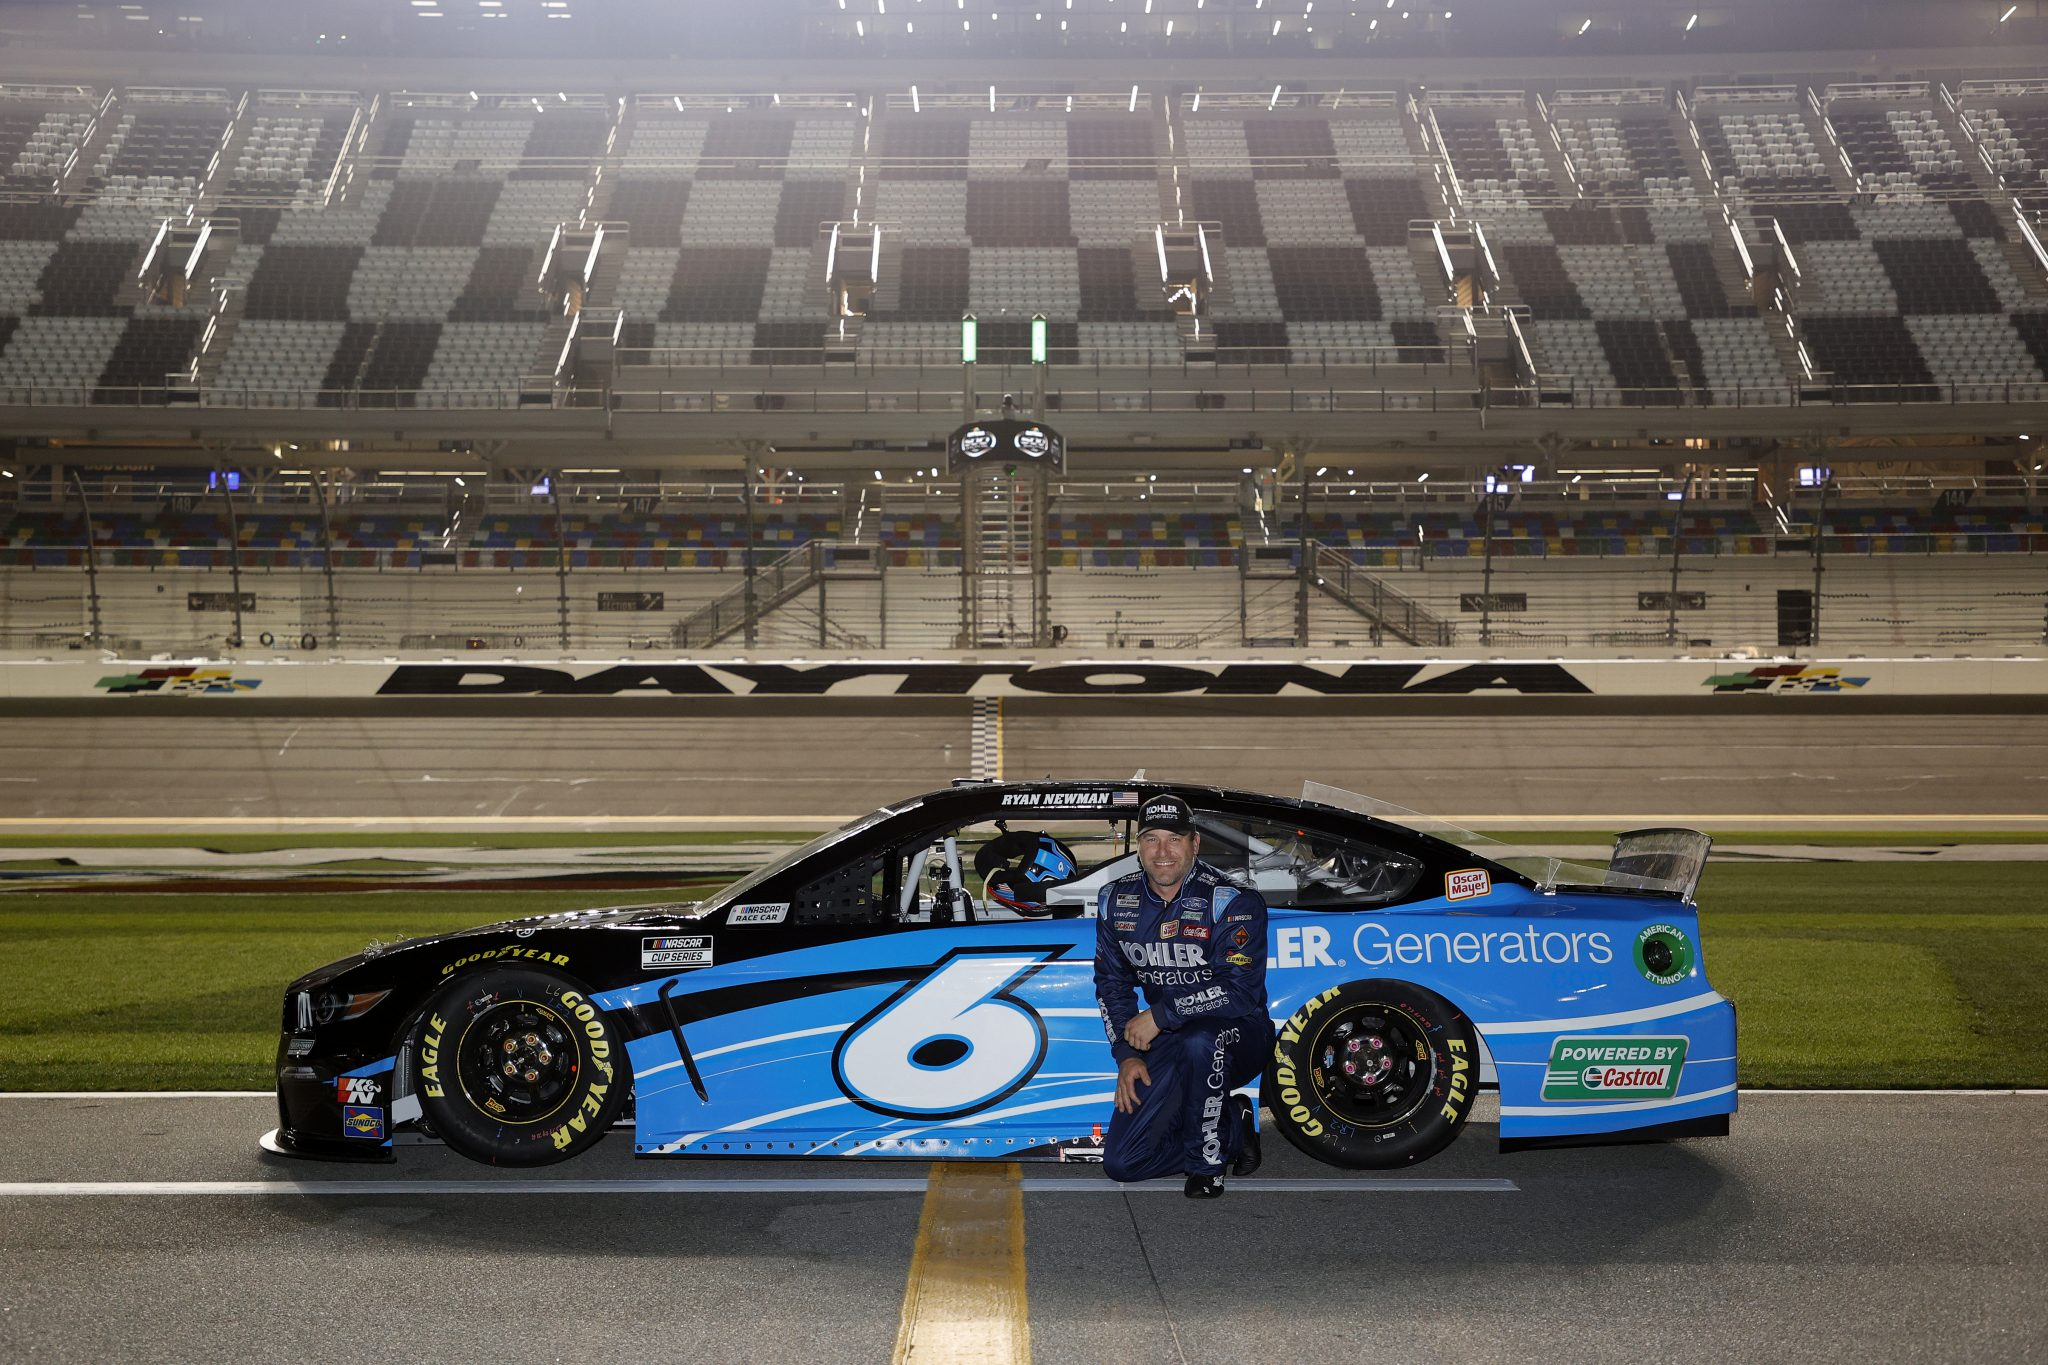 DAYTONA BEACH, FLORIDA - FEBRUARY 10: Ryan Newman, driver of the #6 Kohler Generators Ford, poses for photos during qualifying for the NASCAR Cup Series 63rd Annual Daytona 500 at Daytona International Speedway on February 10, 2021 in Daytona Beach, Florida. (Photo by Jared C. Tilton/Getty Images) | Getty Images